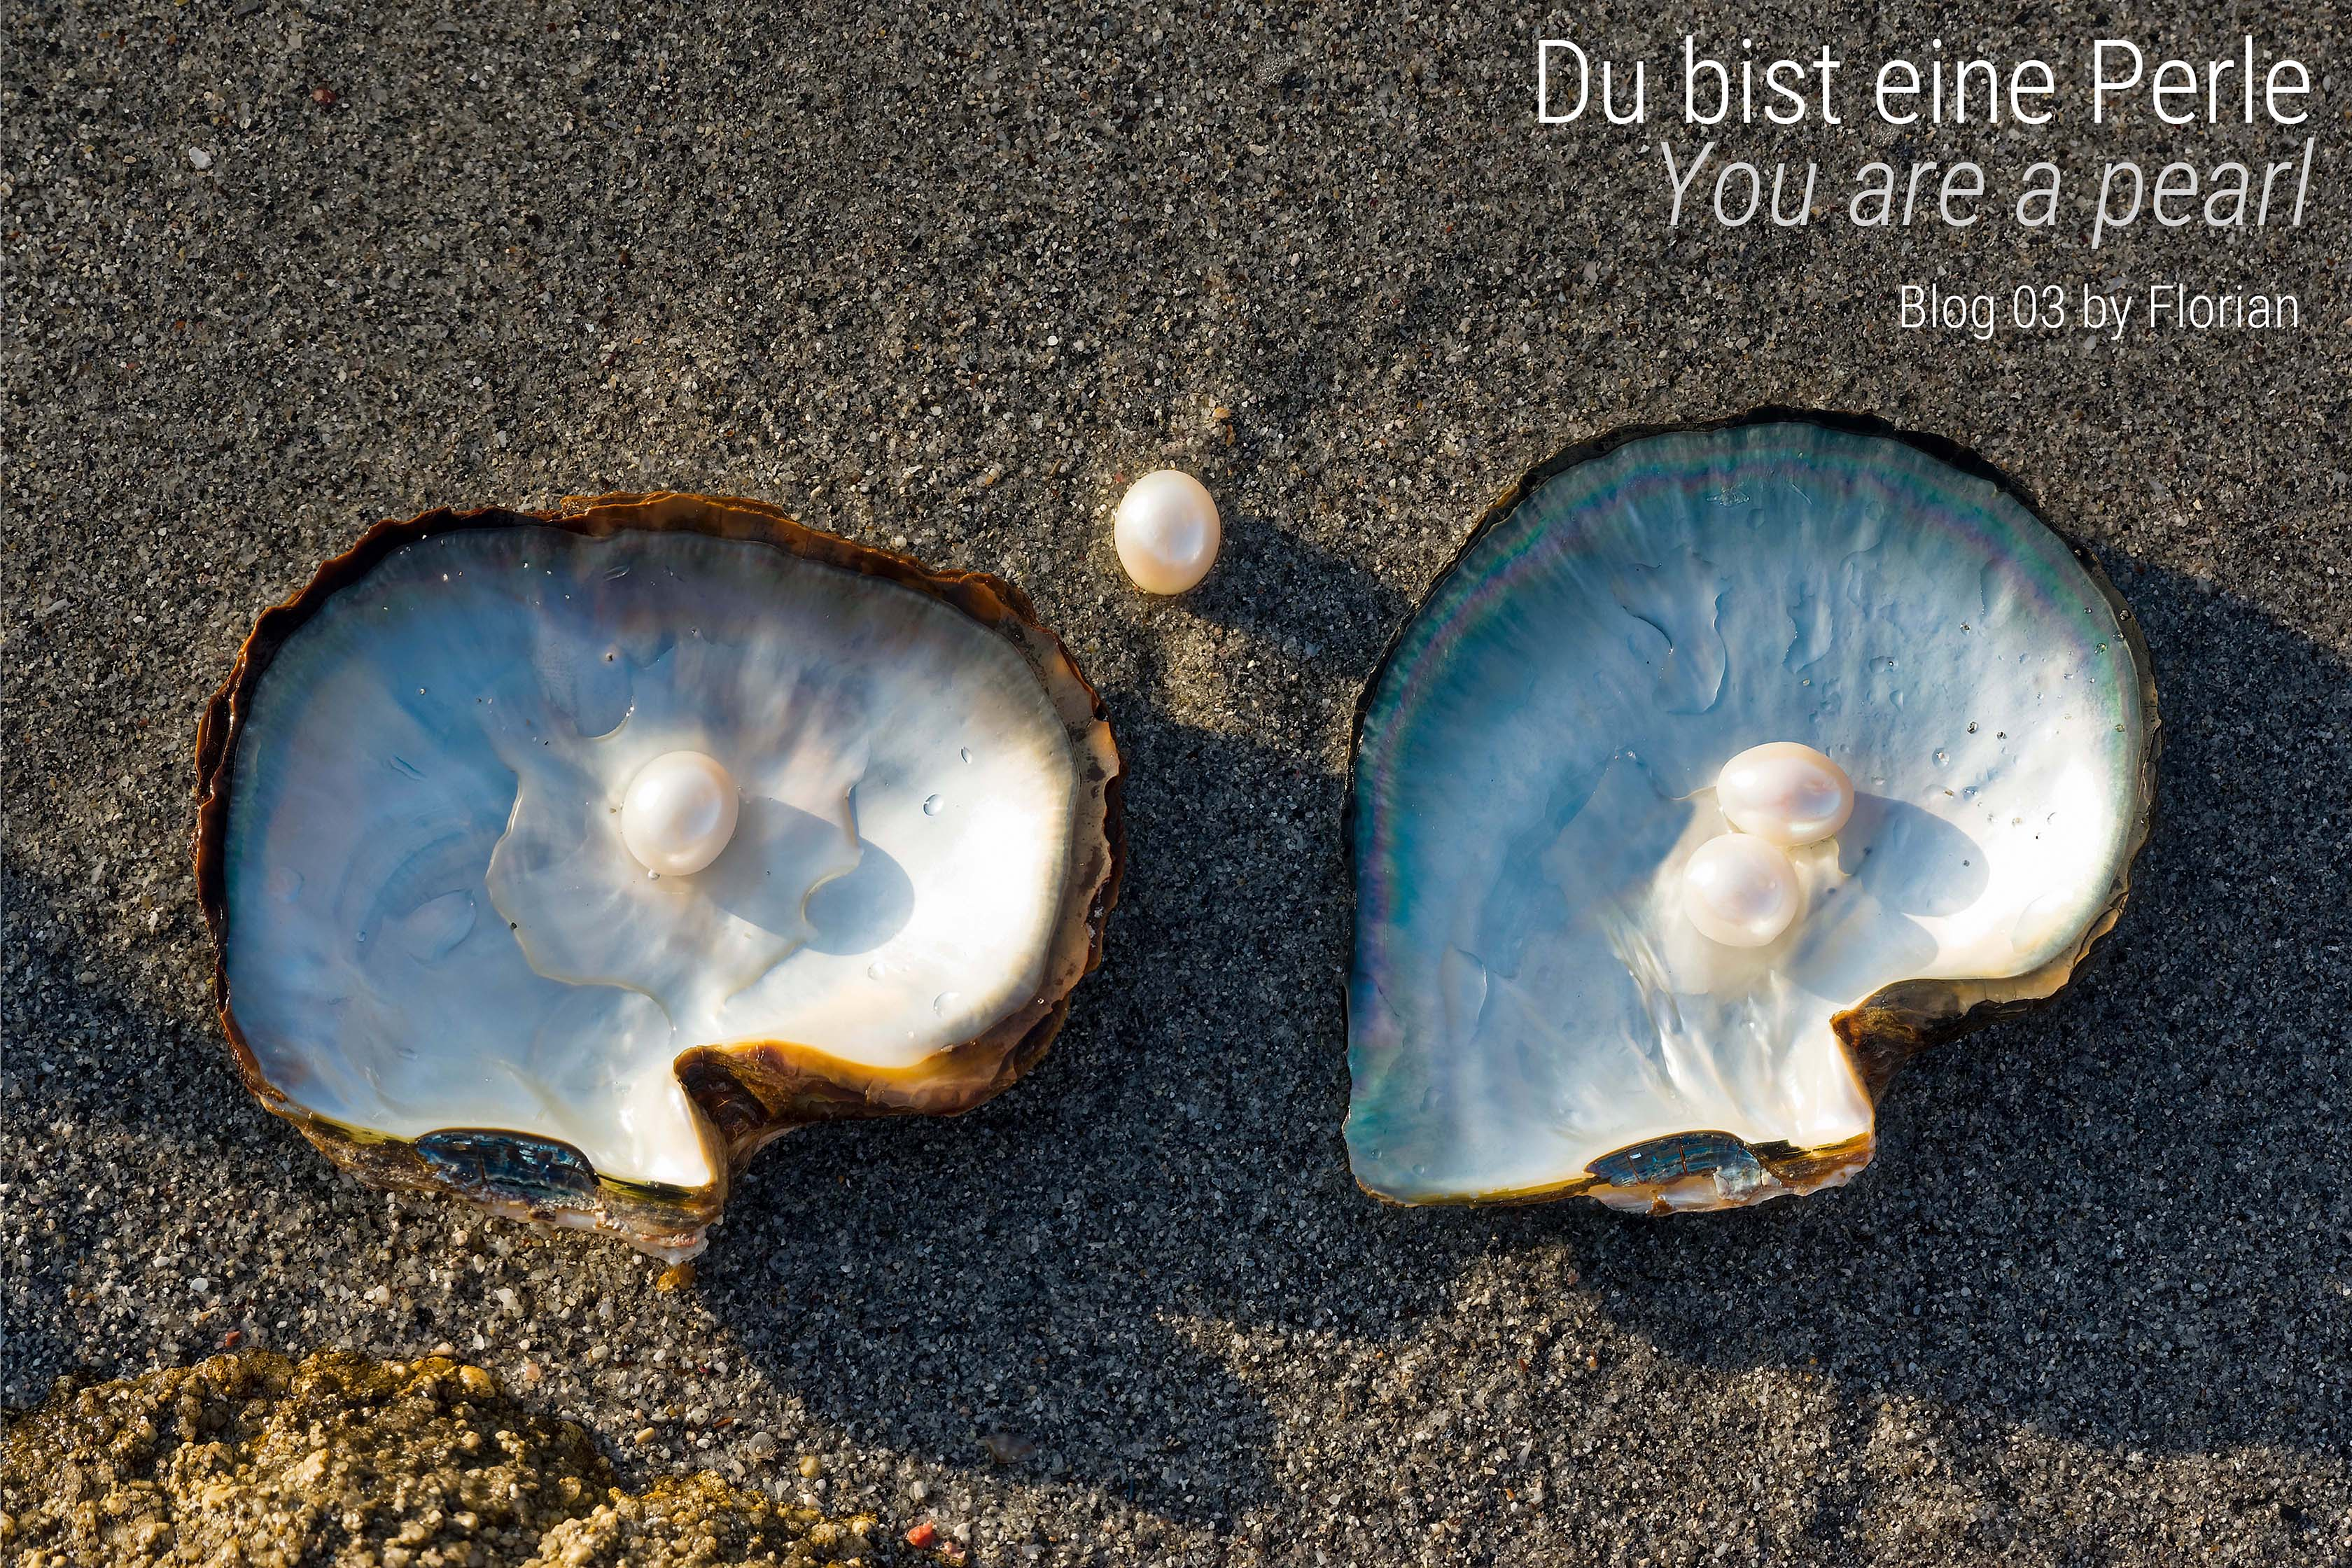 Du bist eine Perle - You are a pearl